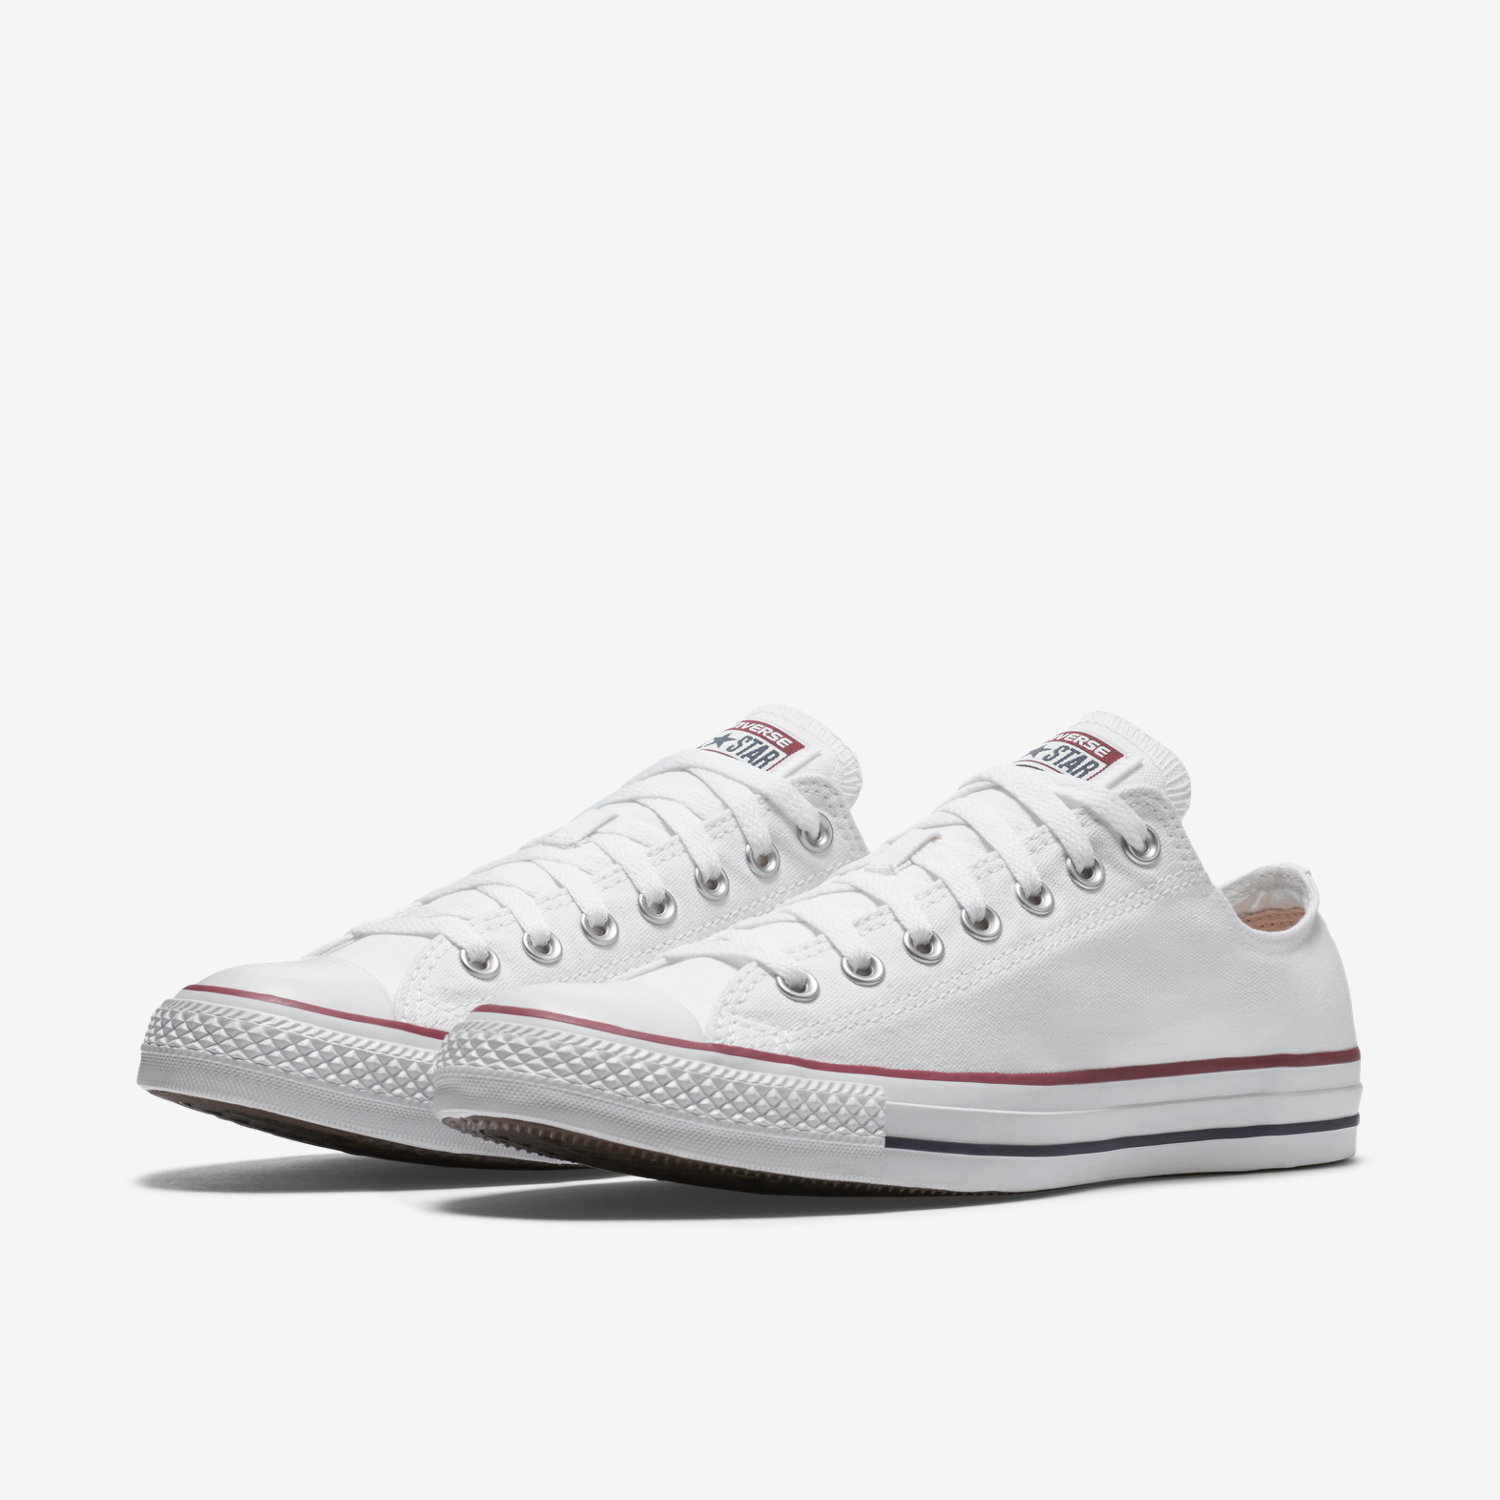 48fc58e0bd51 Converse Womens unisex Chuck Taylor All star Low Top Lace Up